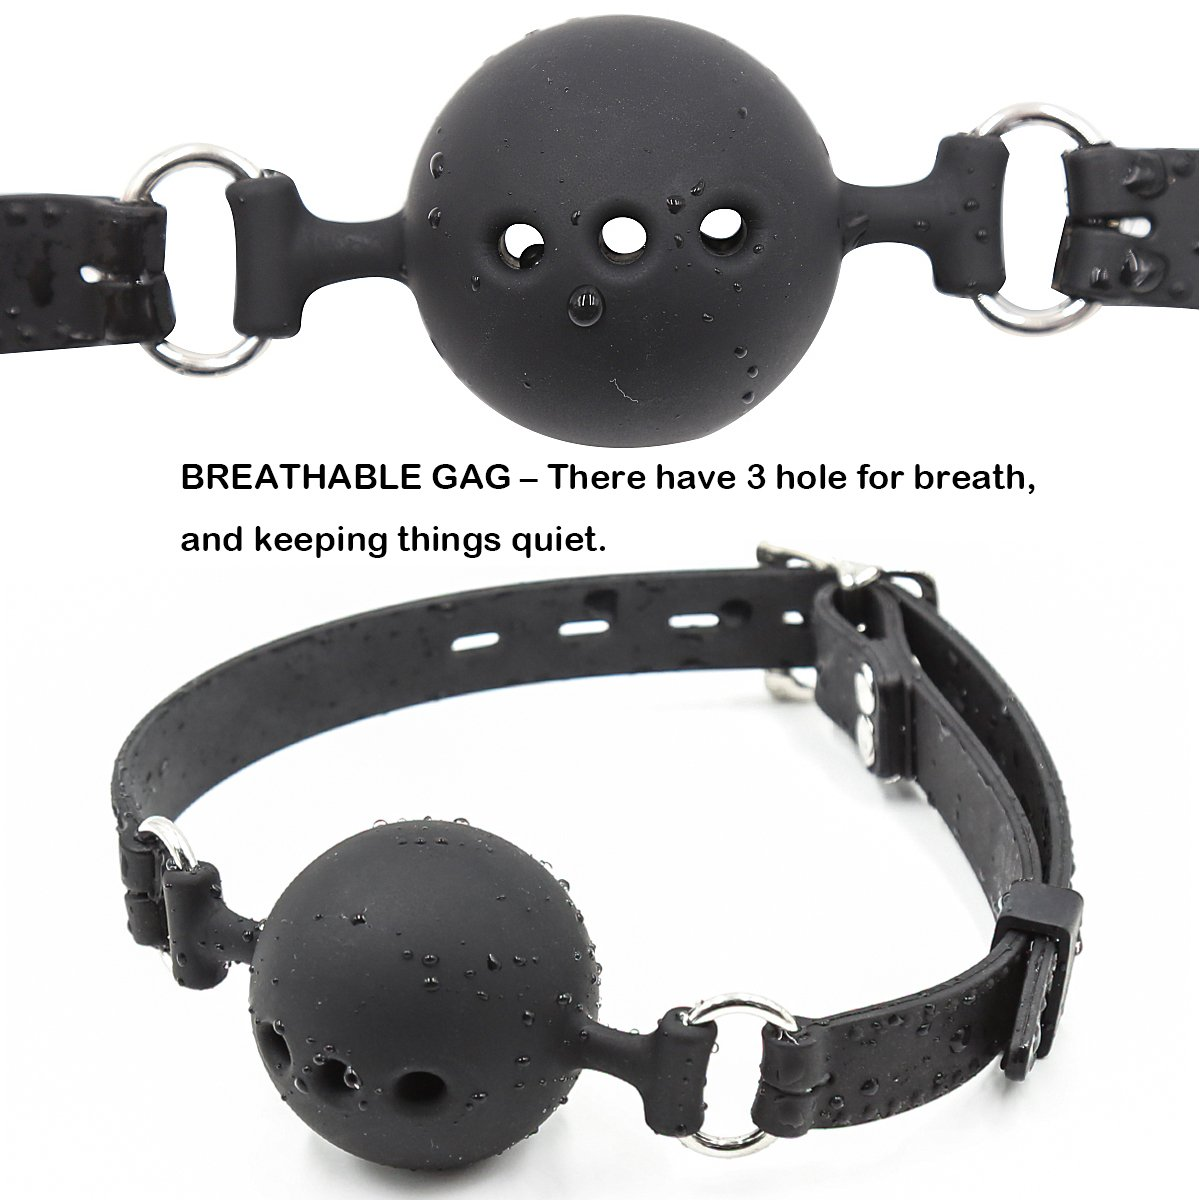 Silicone Breathable Ball Gag For Adult Bondage Restraints Sex Play Open Mouth Gag Harness Gag Slave Bondage Sex Toys For Couples